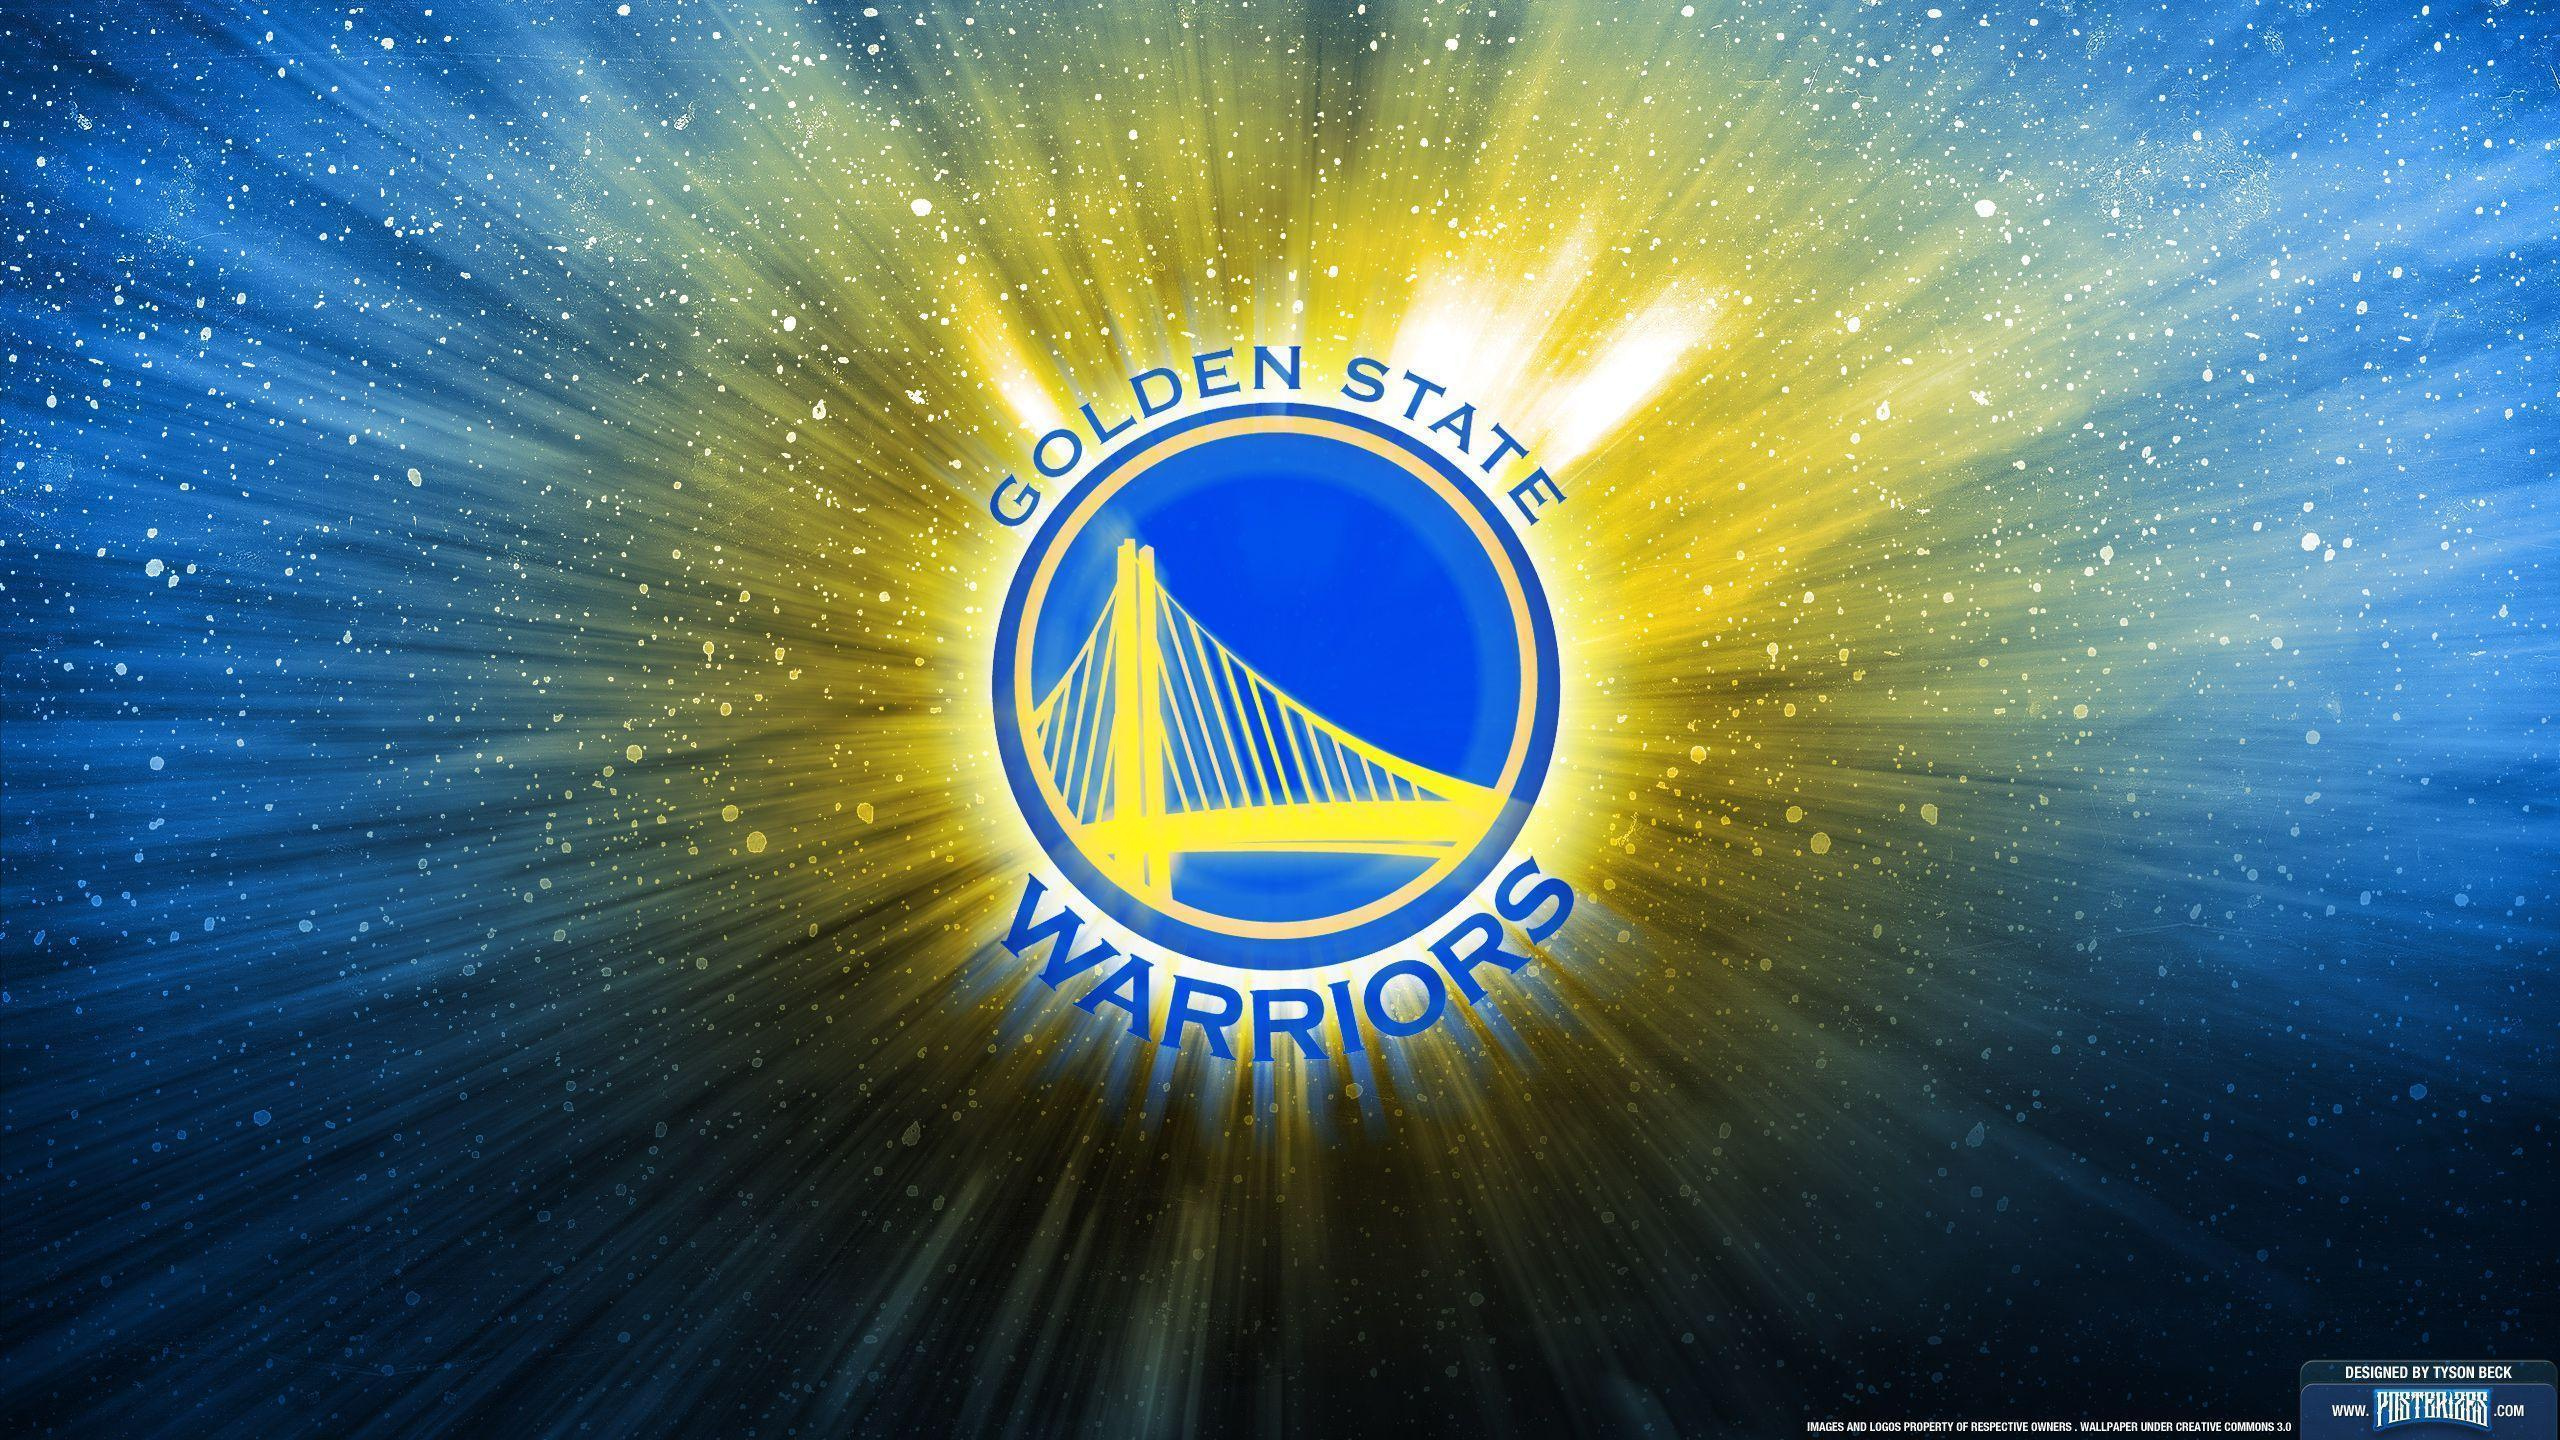 Golden State Warriors Wallpapers 4K